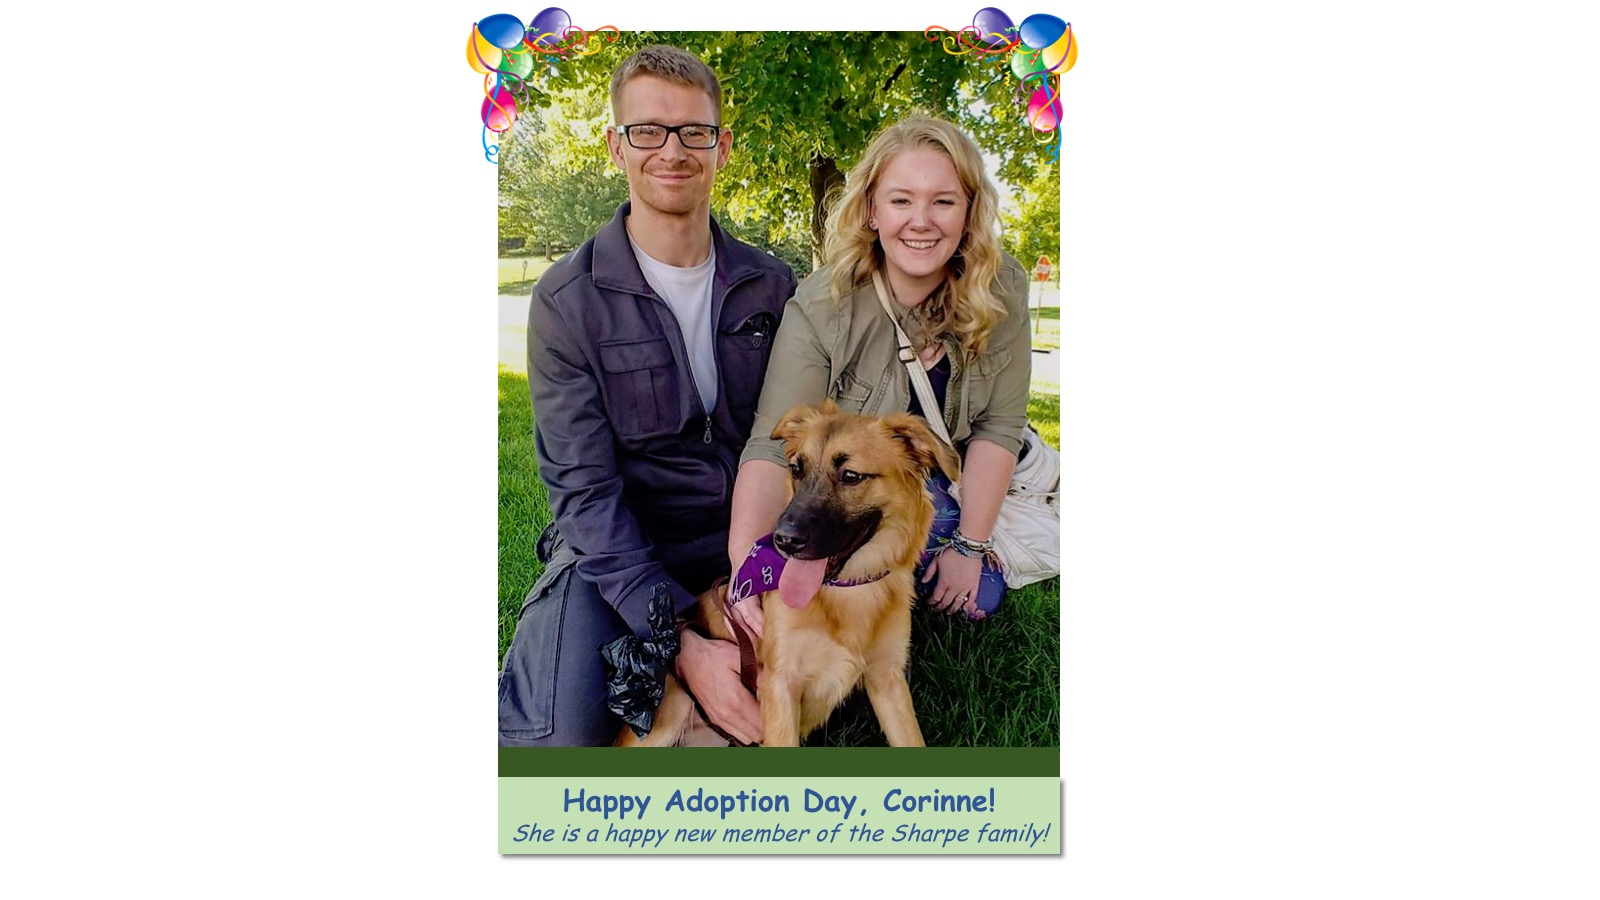 Corinne_Adoption_Photo_2018.jpg